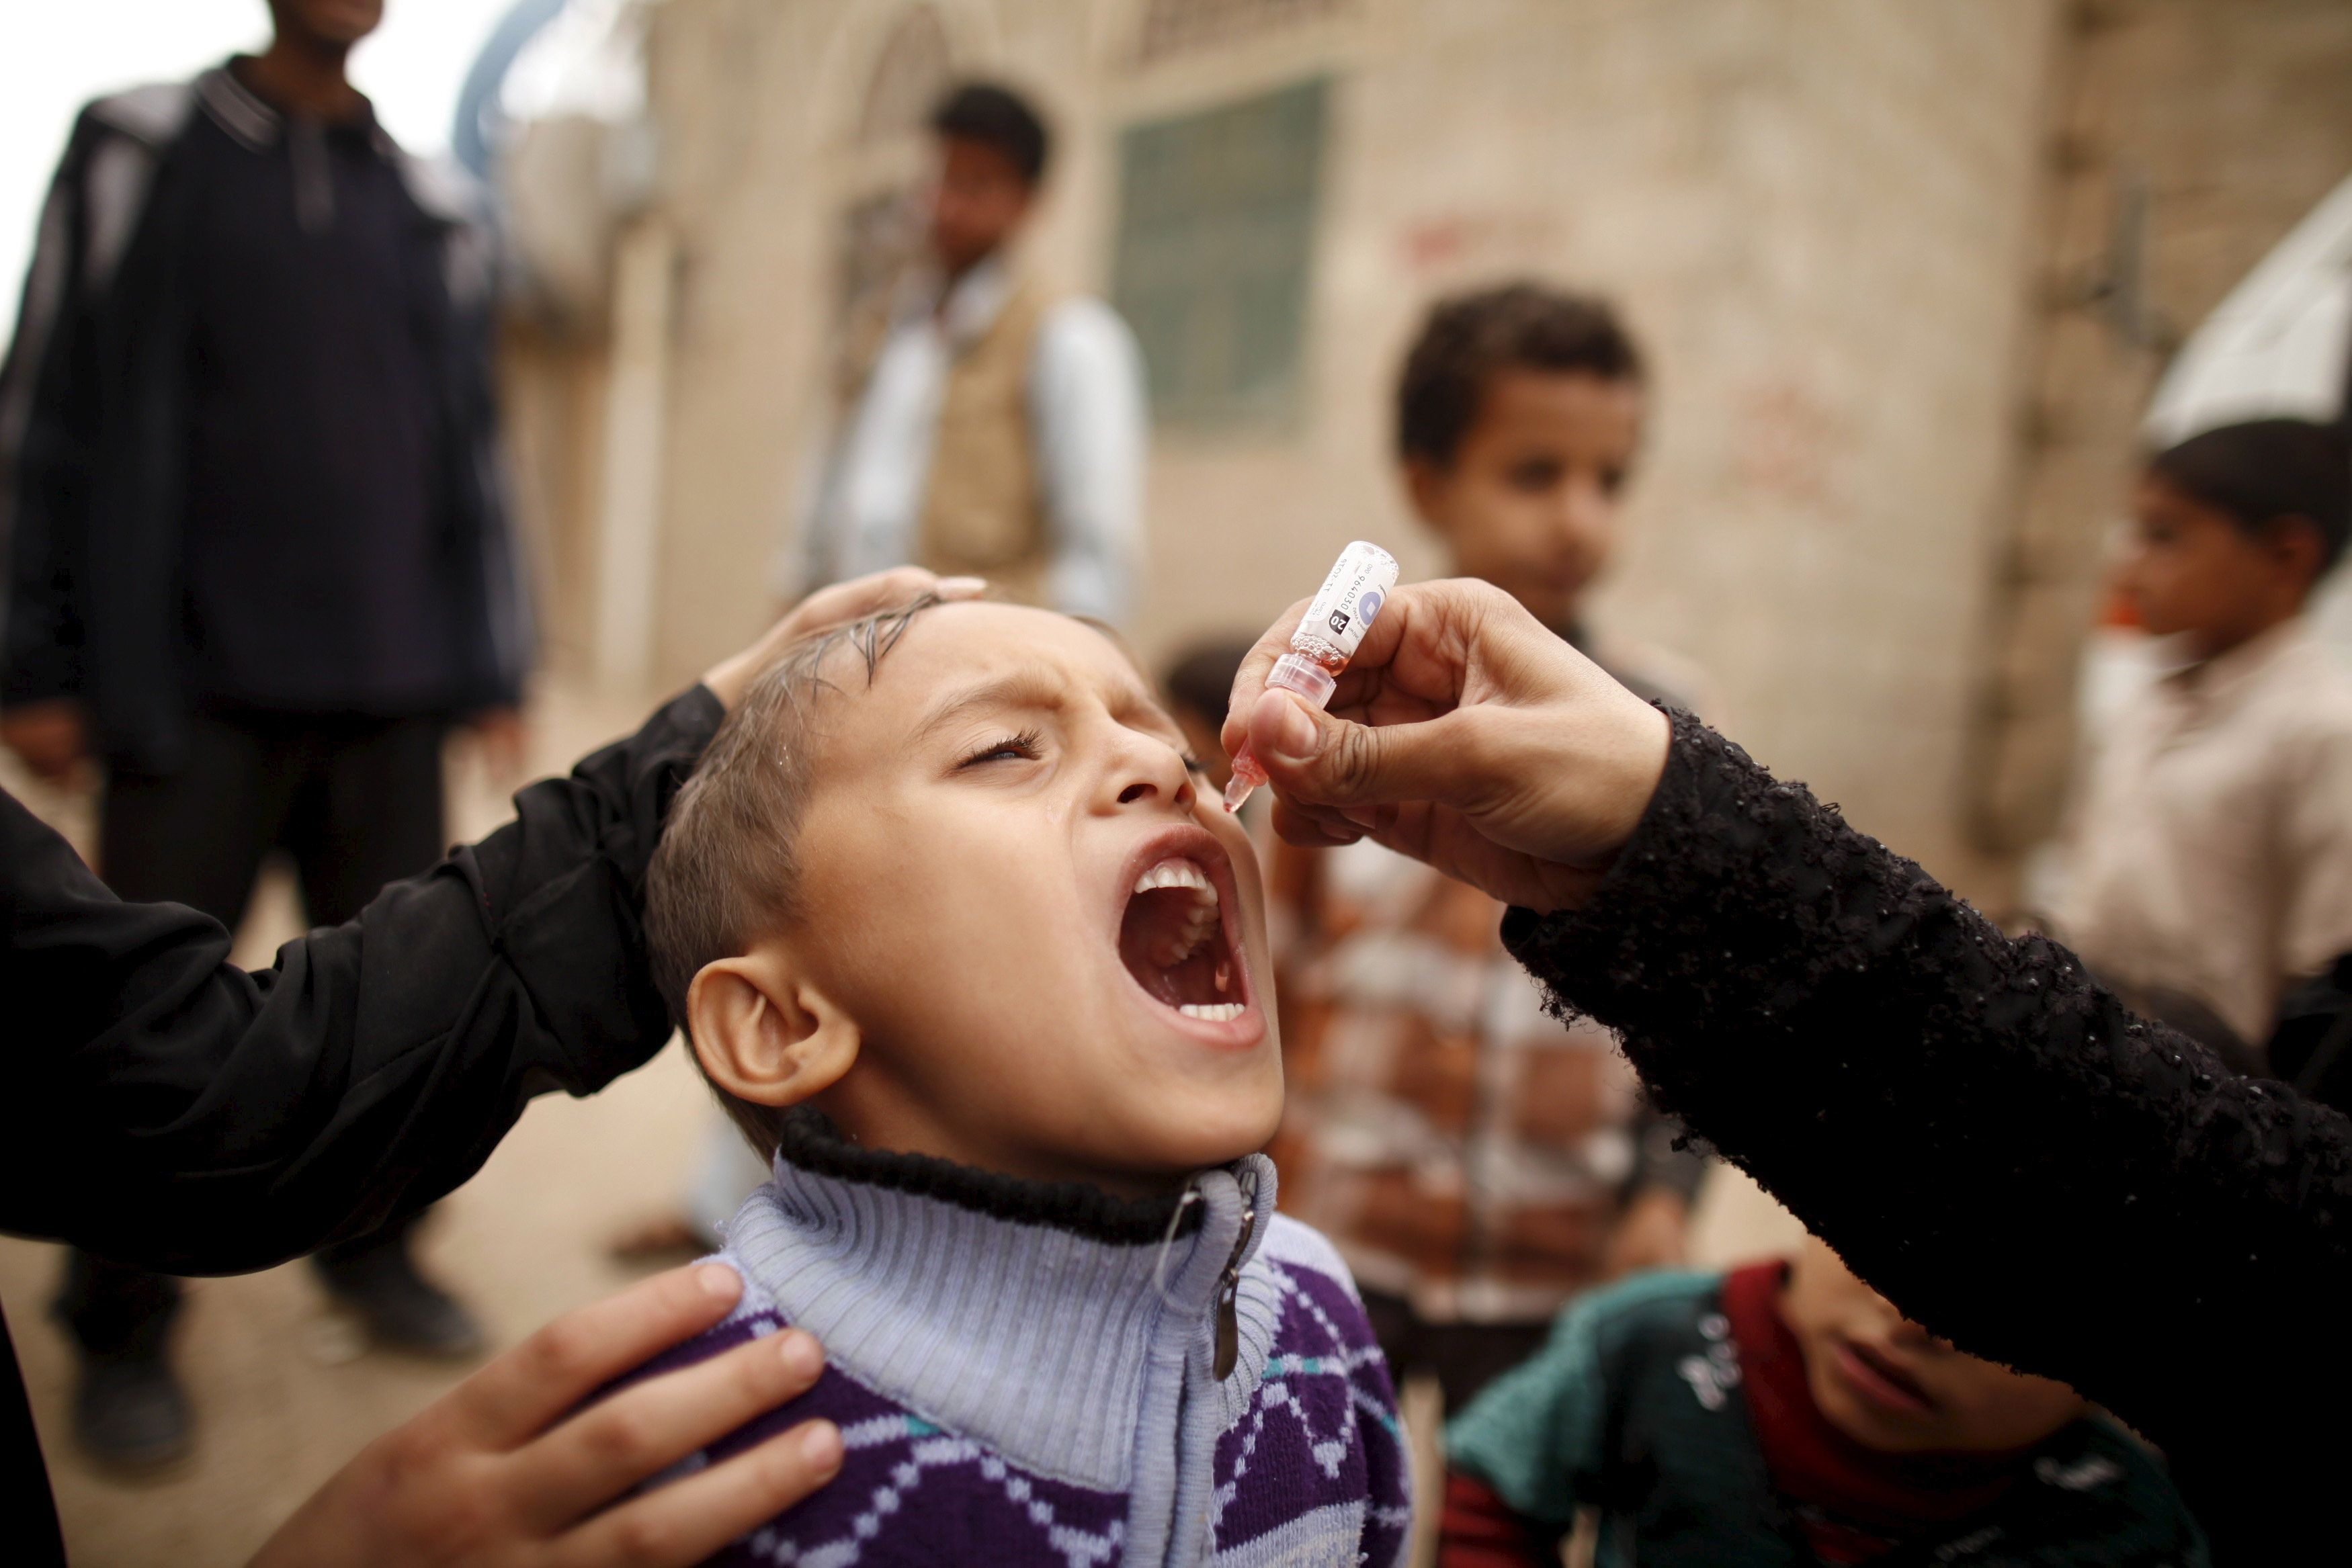 A boy receives polio vaccination drops during a house-to-house vaccination campaign in Yemen's capital, Sanaa, on April 10, 2